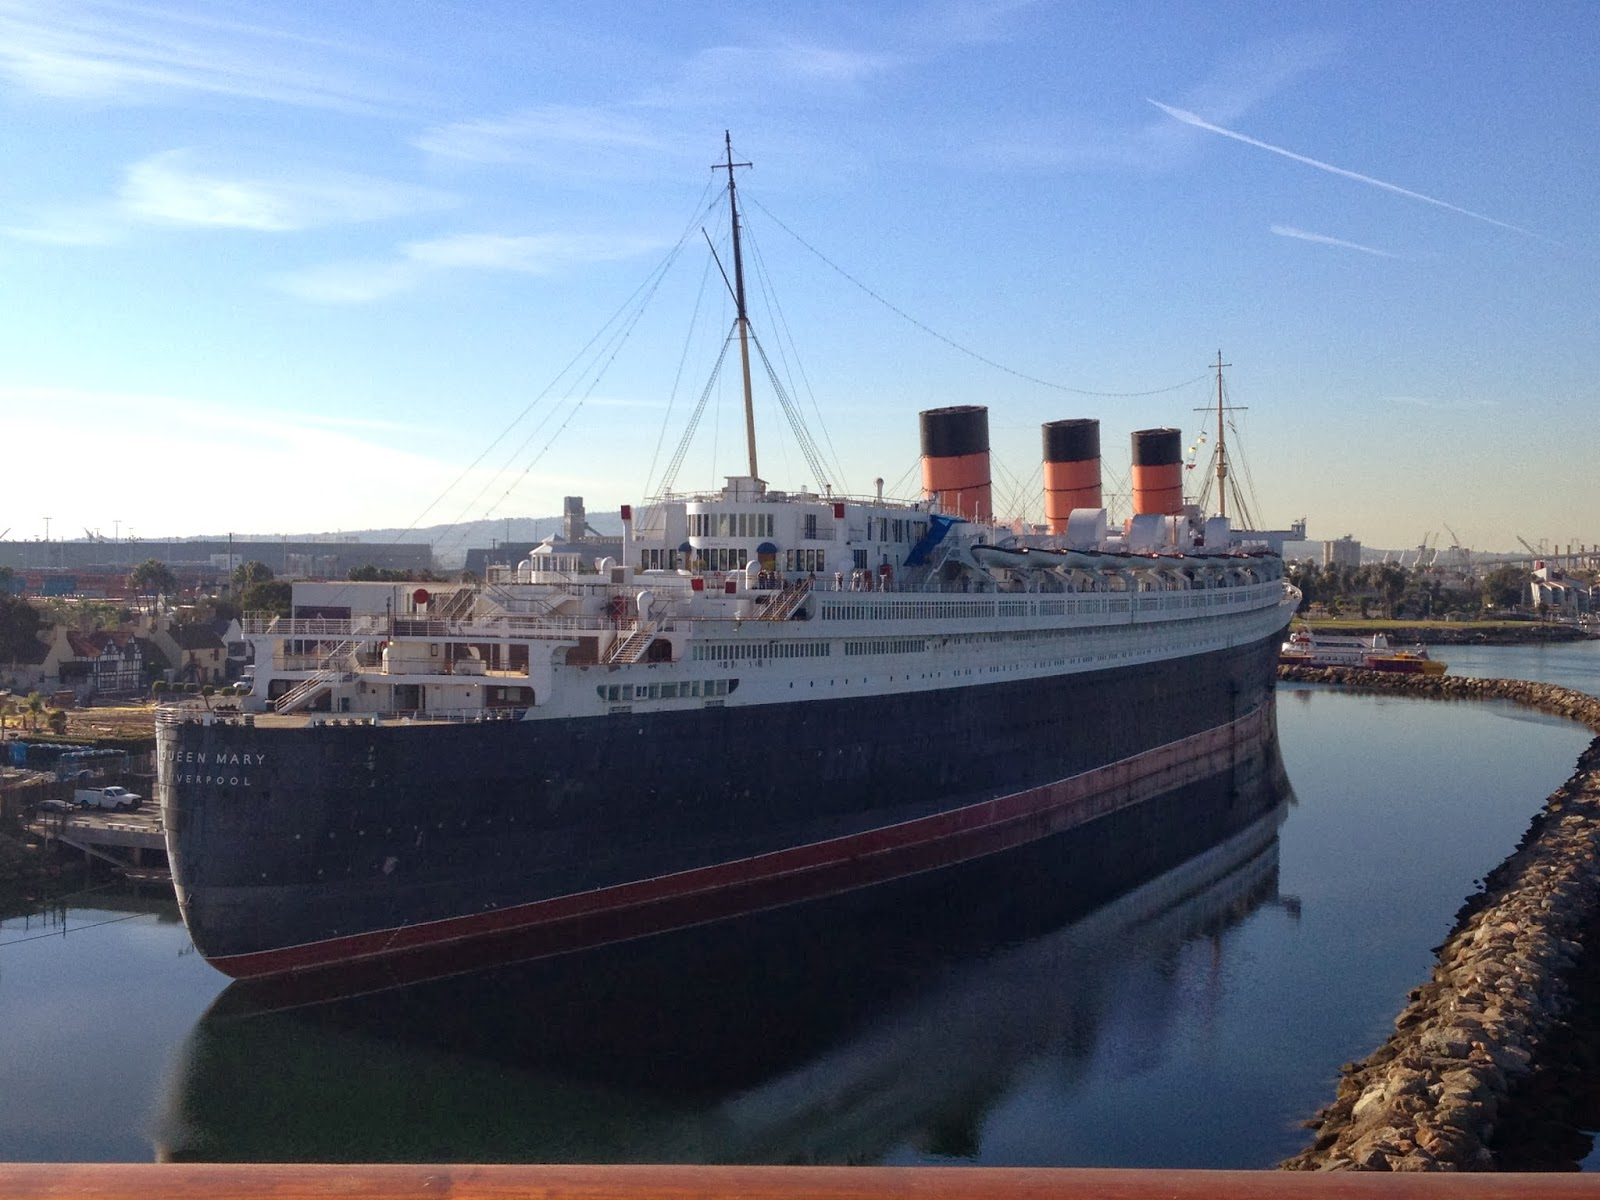 Rms queen mary pictures 8 Black and White Nail Art Designs With Pictures And Styling Tips